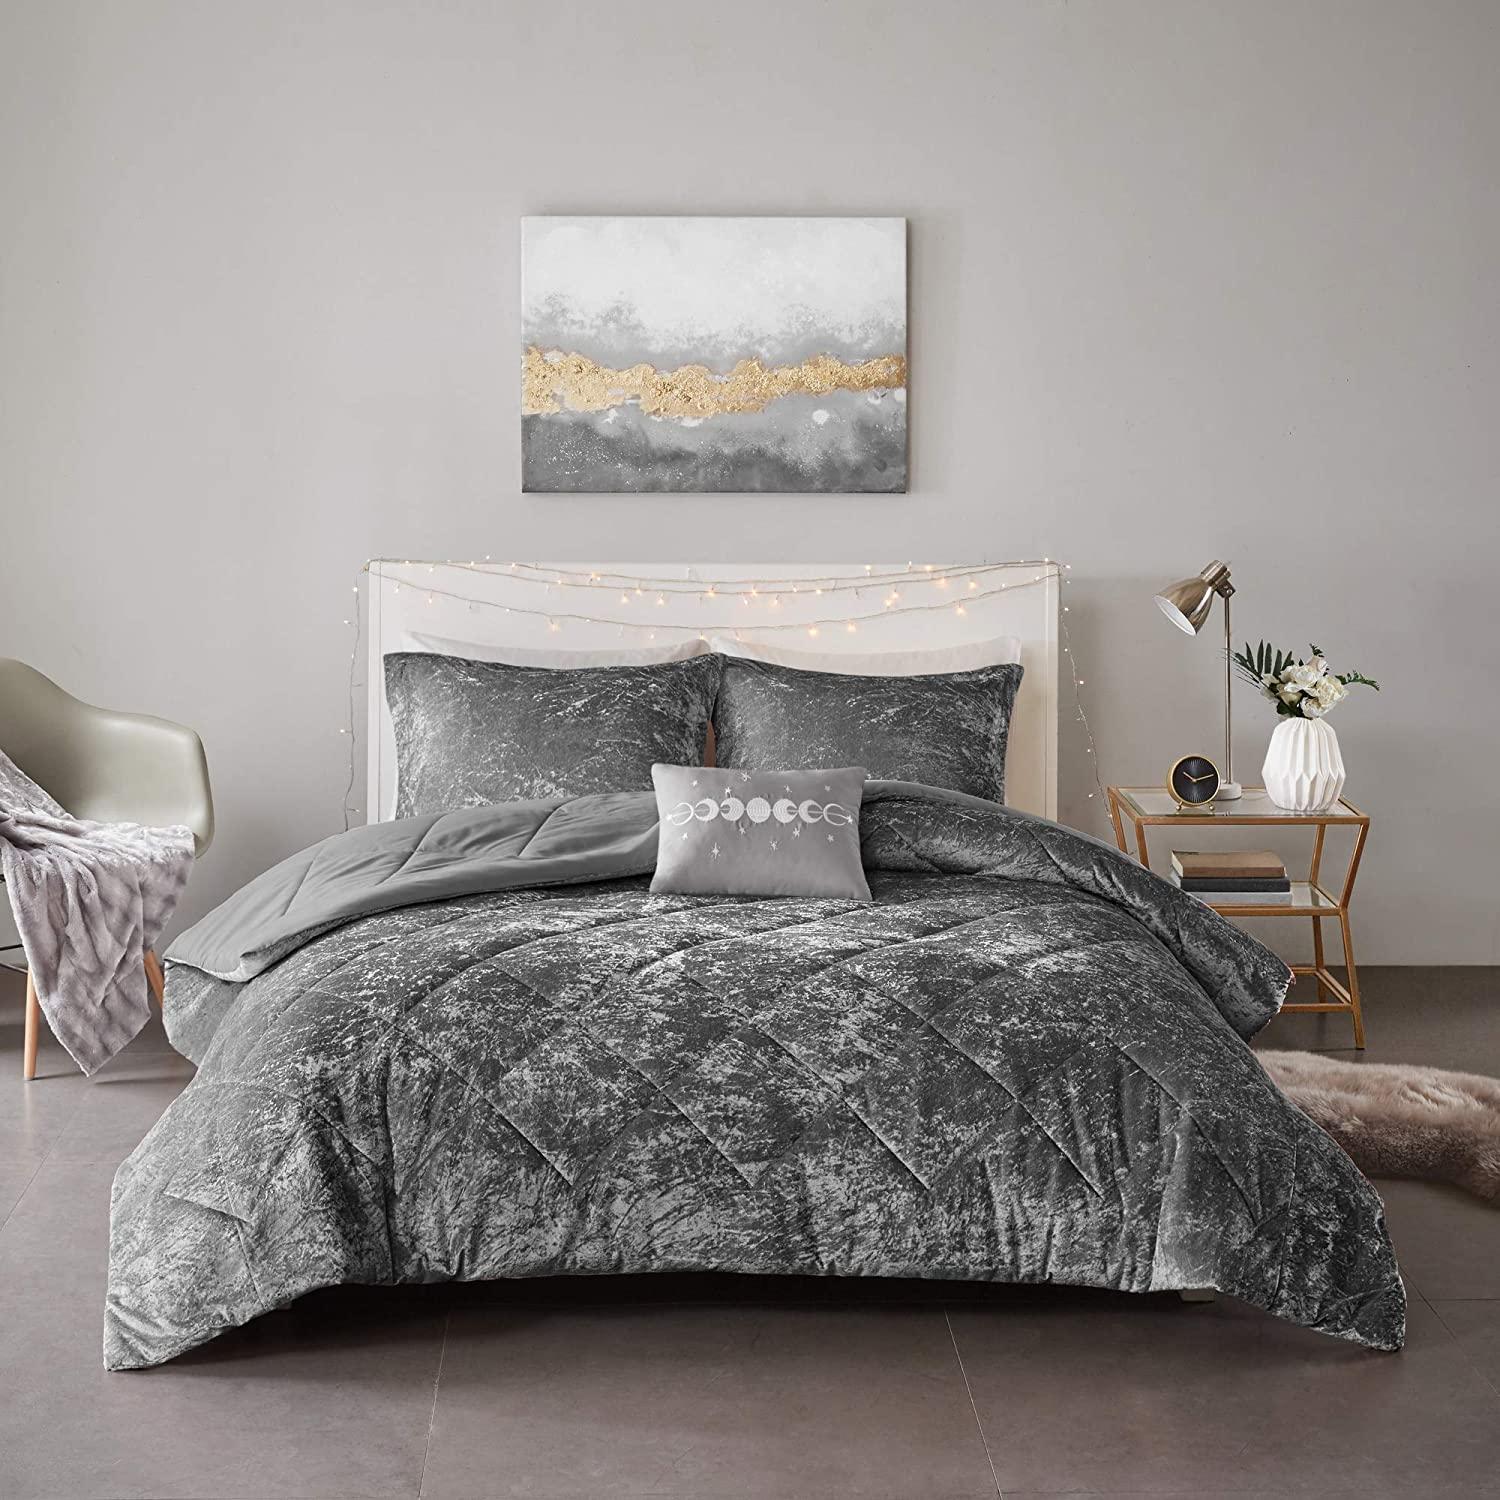 Intelligent Design ID10-1791 Felicia Luxe Comforter Velvet Lush Double Sided Diamond Quilting Modern All Season Bedding Set with Matching Sham, Decorative Pillow, Twin/Twin XL, Grey 3 Piece